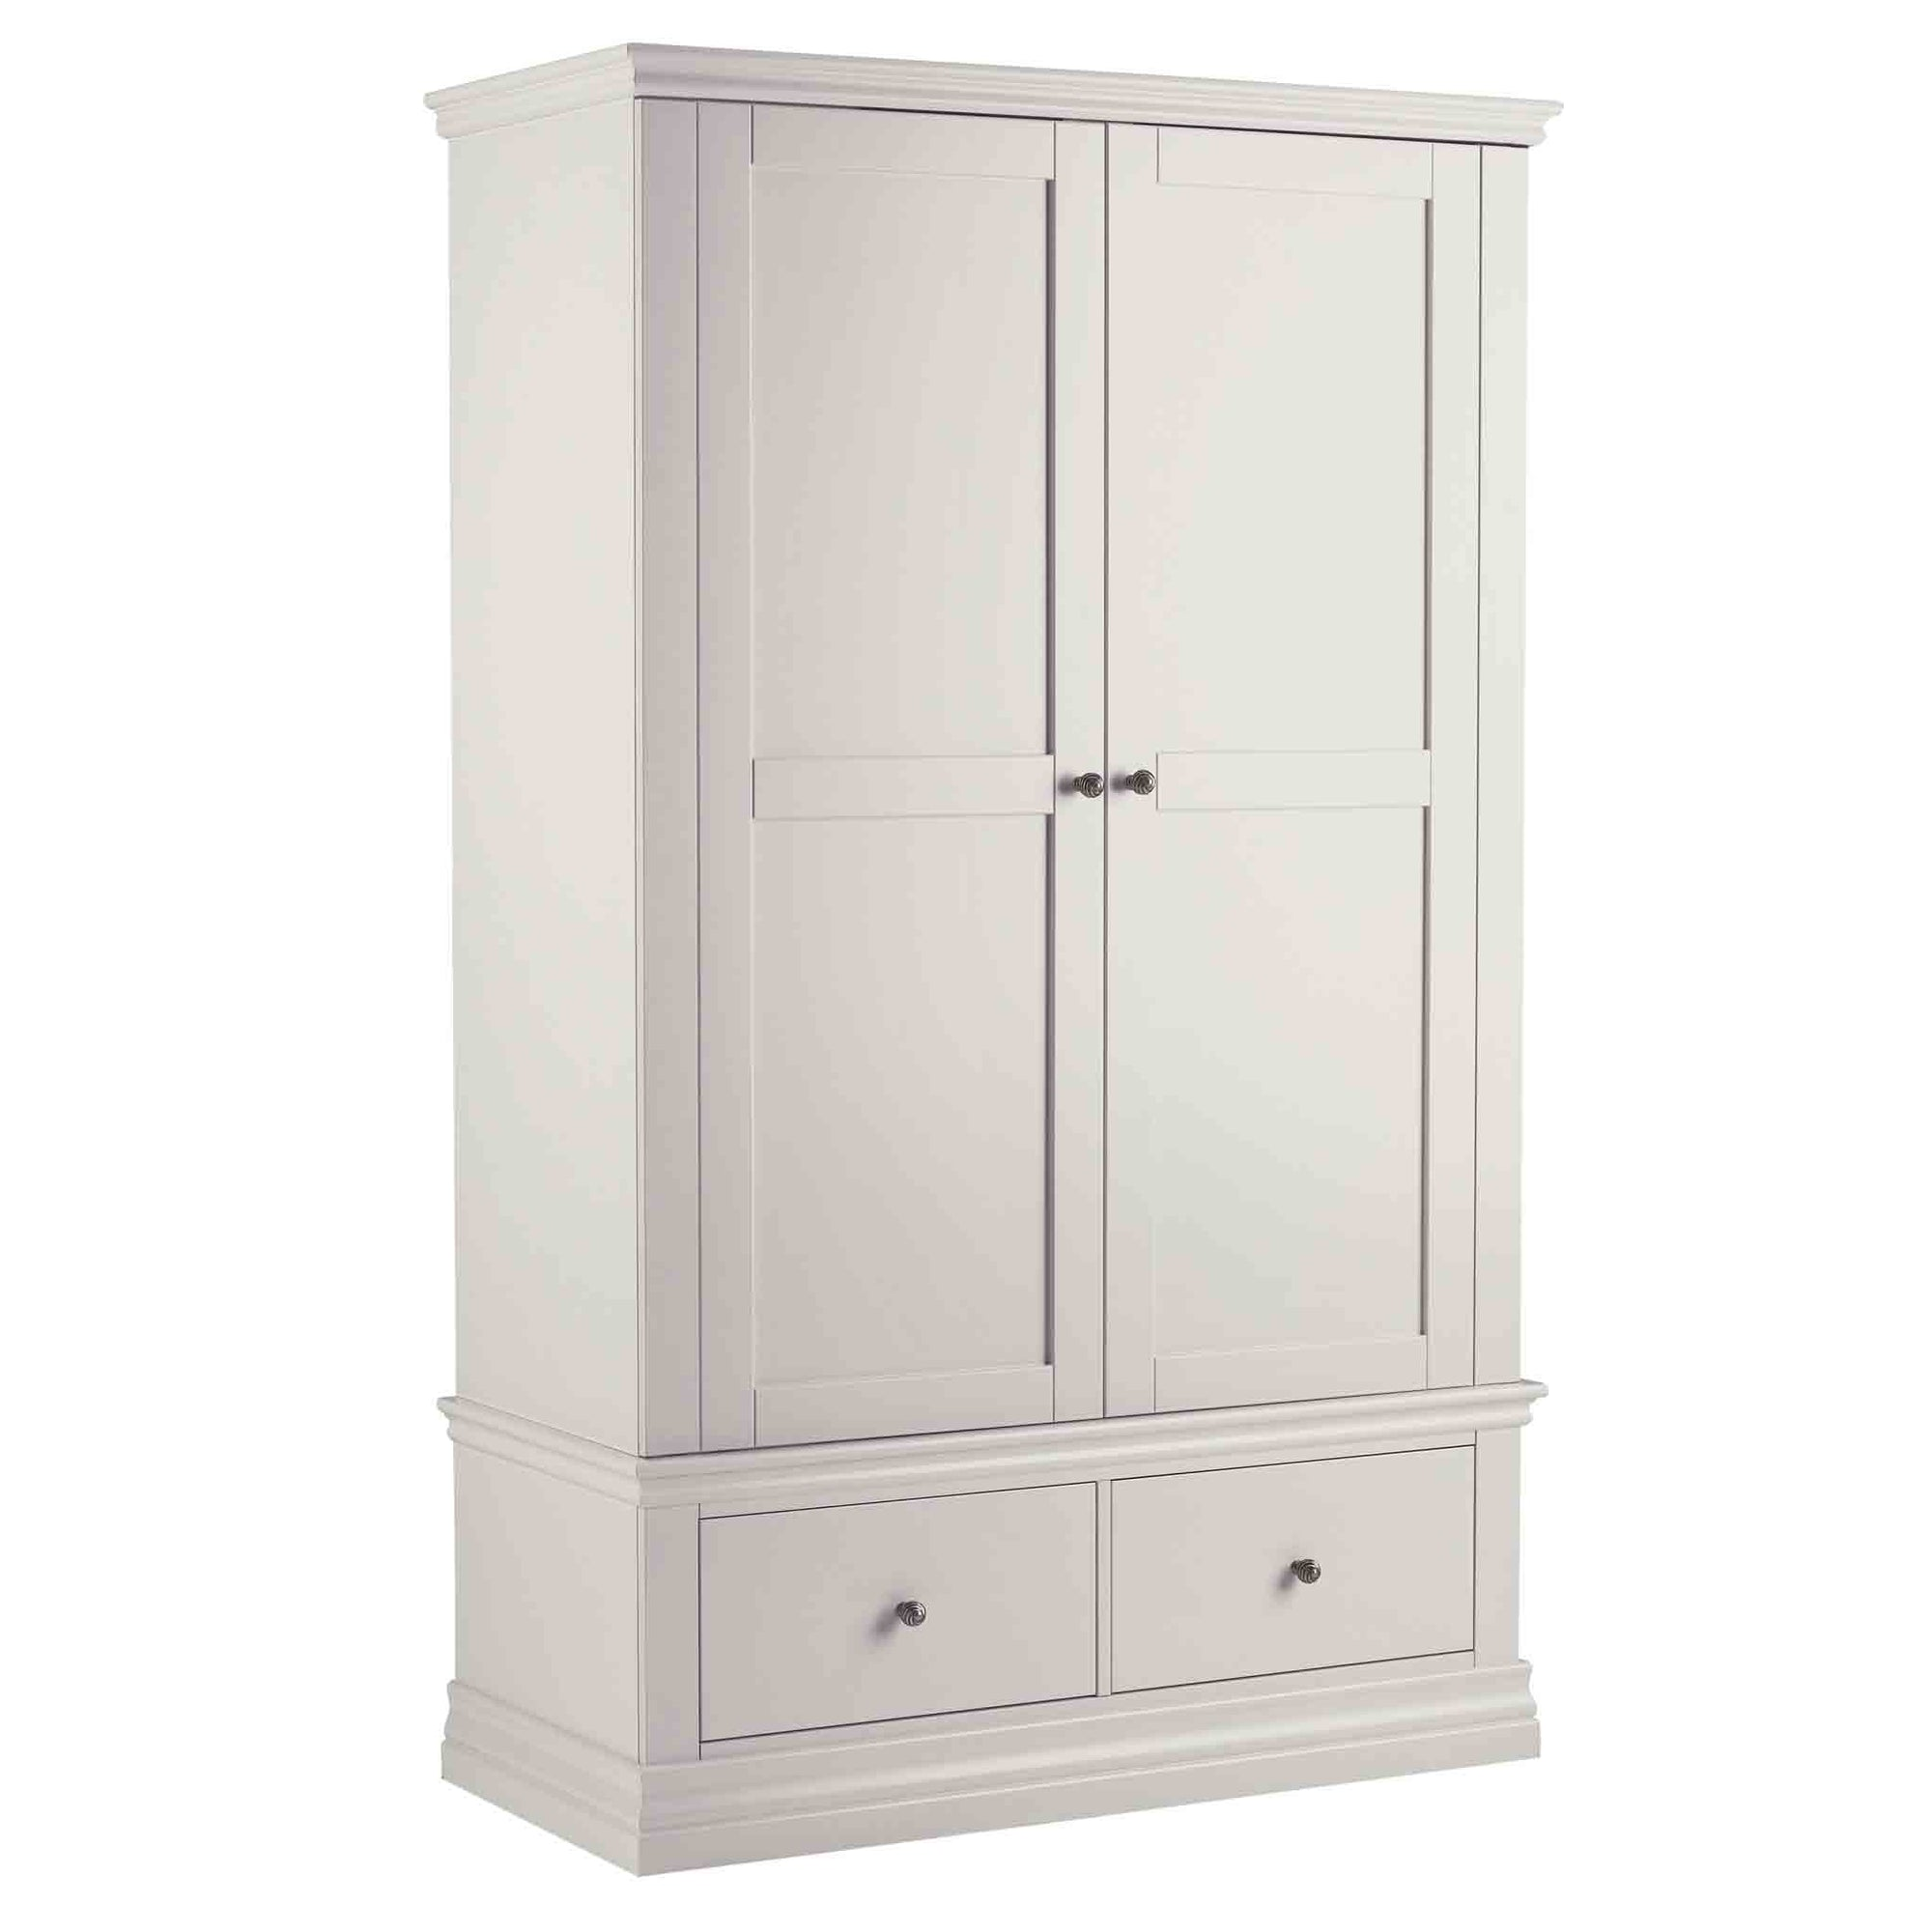 Melrose Cotton White Double Wardrobe from Roseland Furniture